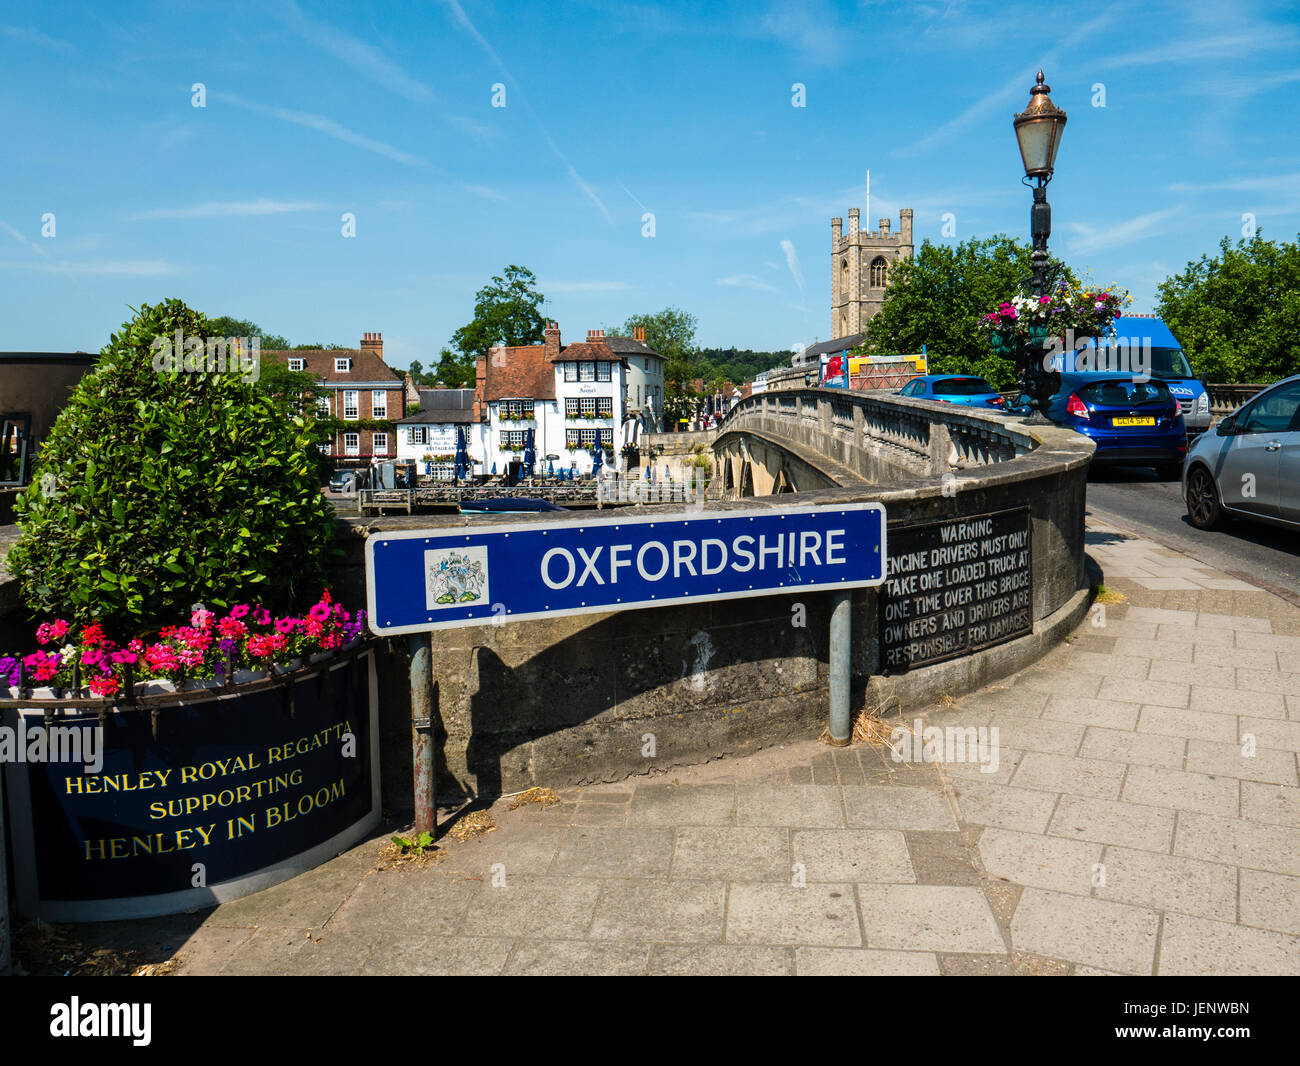 Oxfordshire Sign, Henley Bridge, Henley-on-Thames, Oxfordshire, England - Stock Image